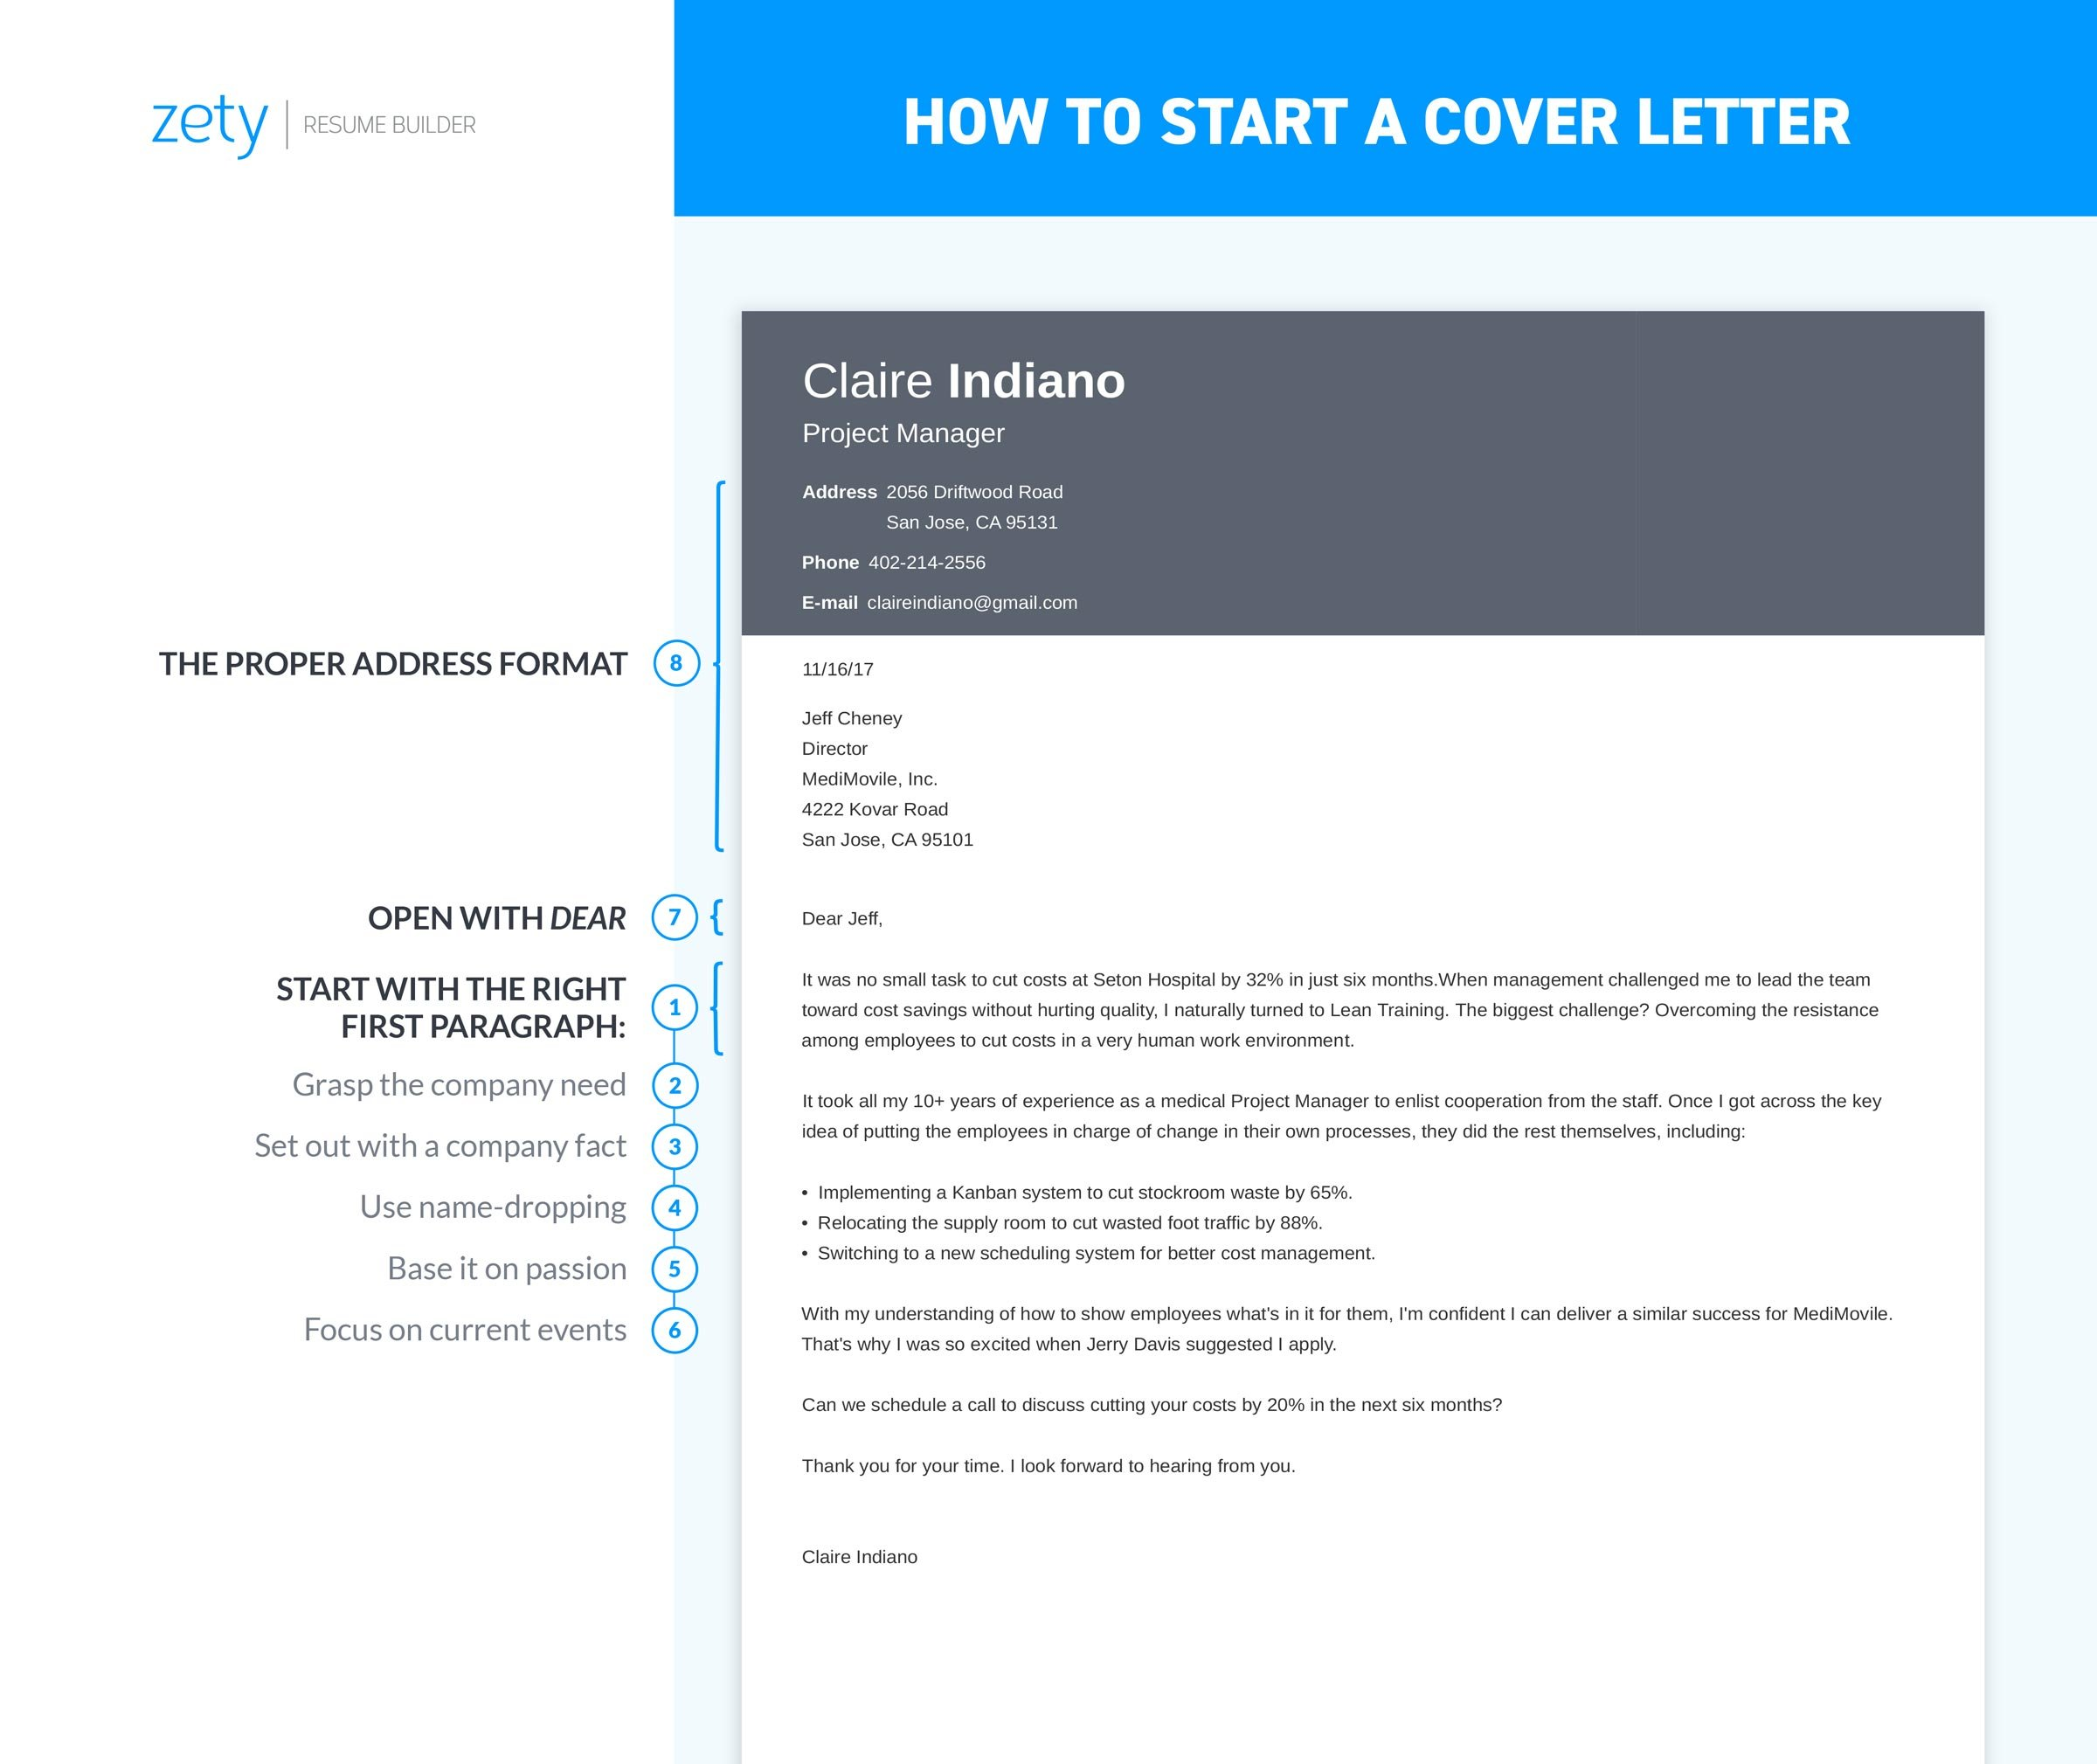 Nice Infographic On How To Start A Cover Letter Regarding How Do You Start A Cover Letter